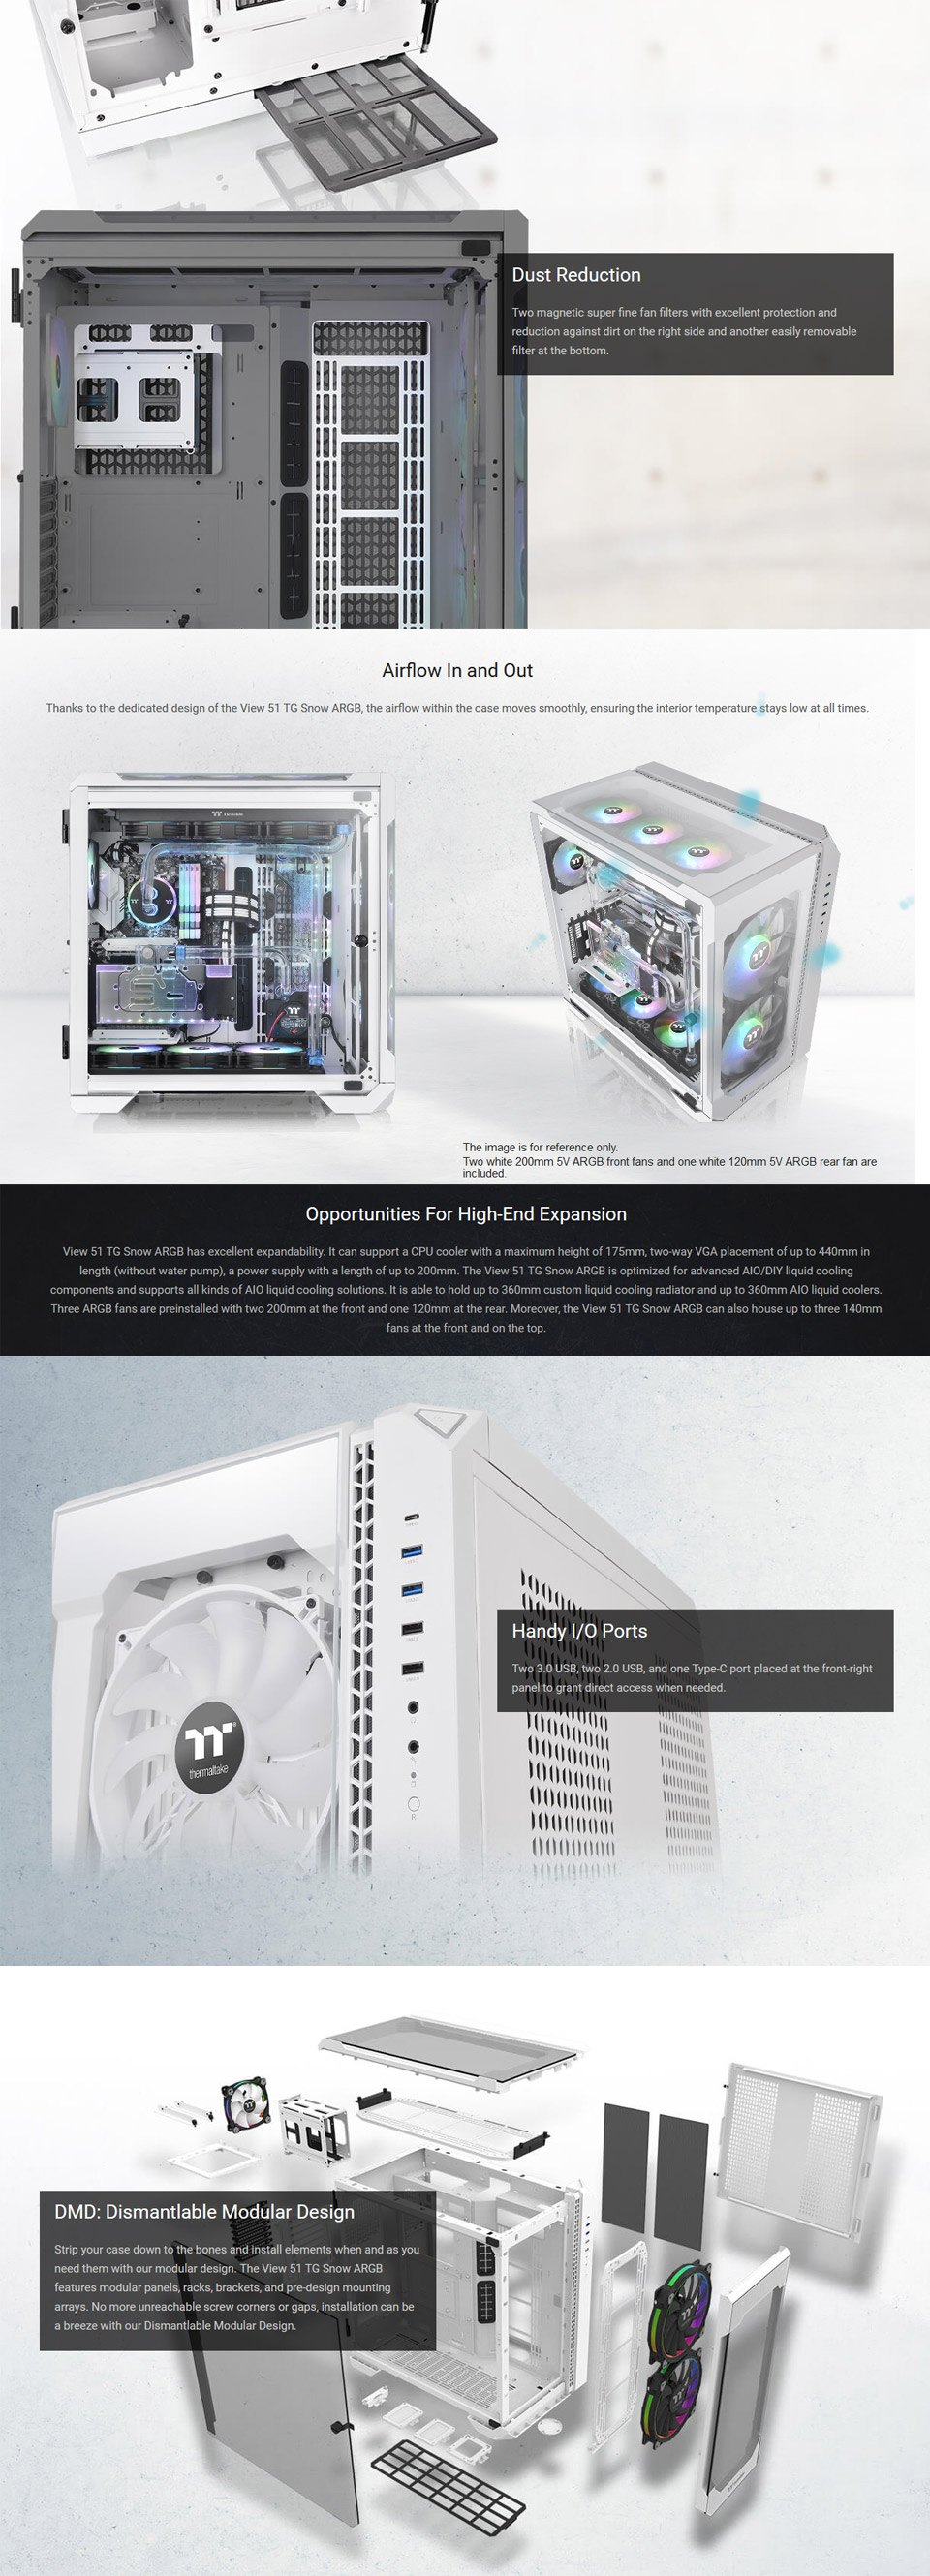 Thermaltake View 51 A-RGB Tempered Glass Case White features 3